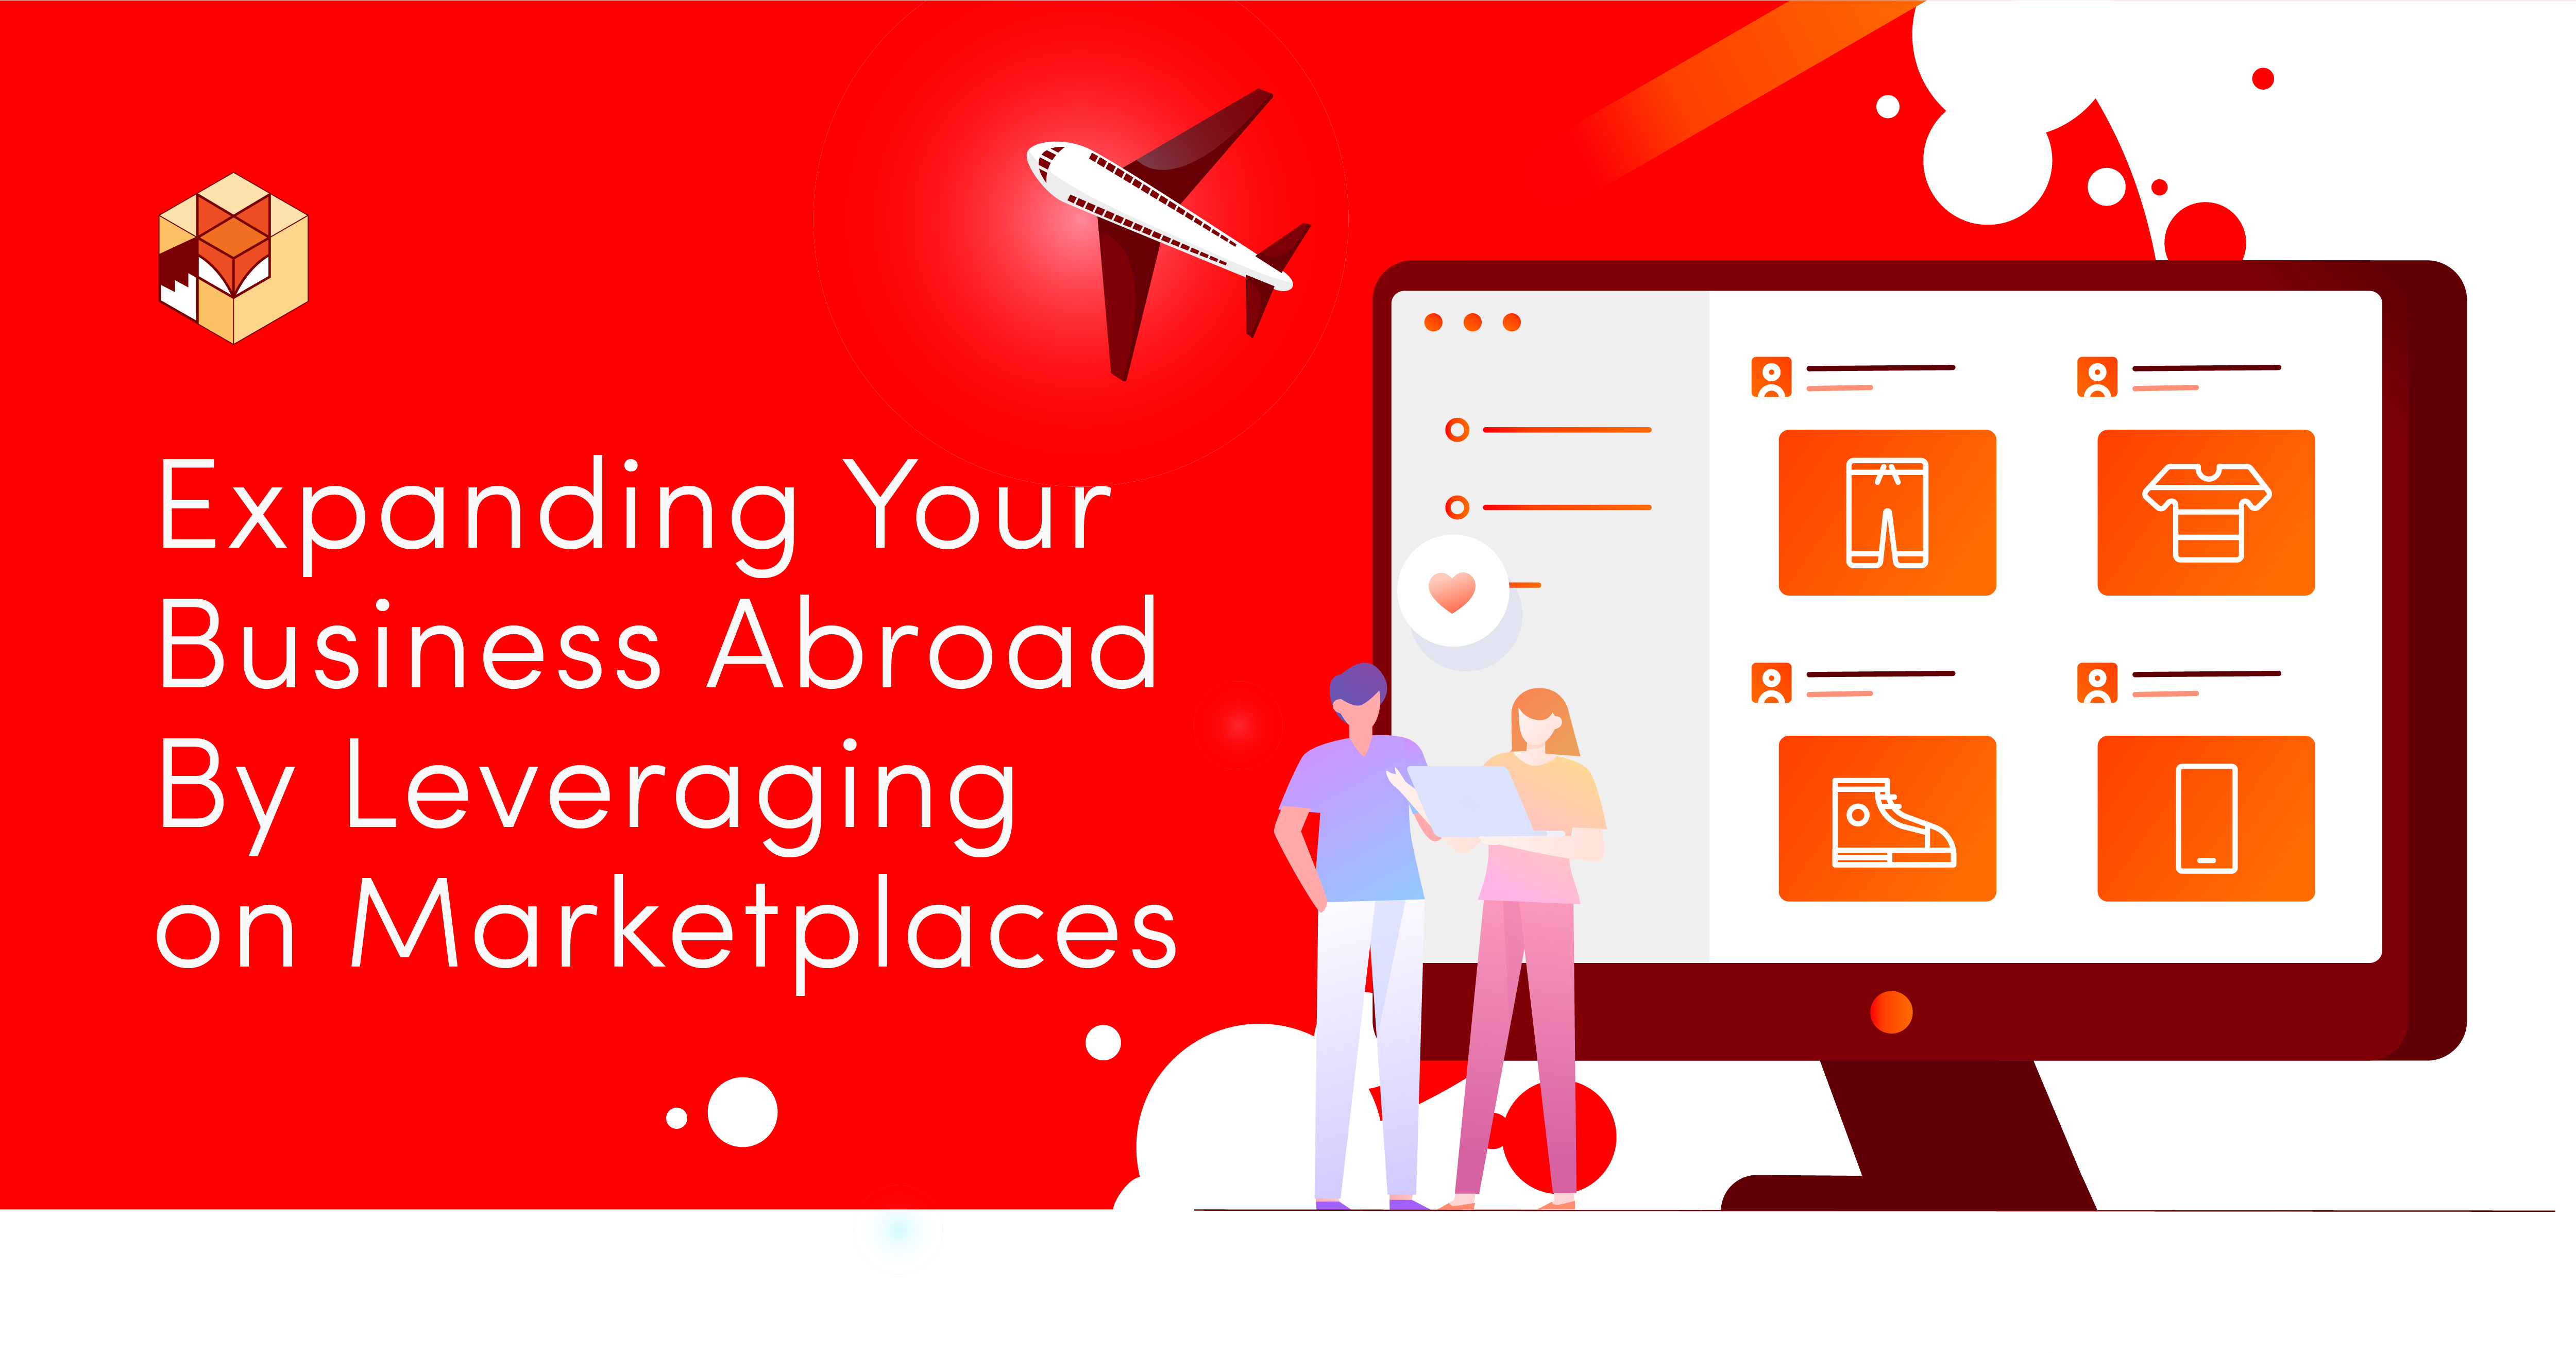 Mar_Expanding Your Business Abroad by Leveraging on Marketplaces 1